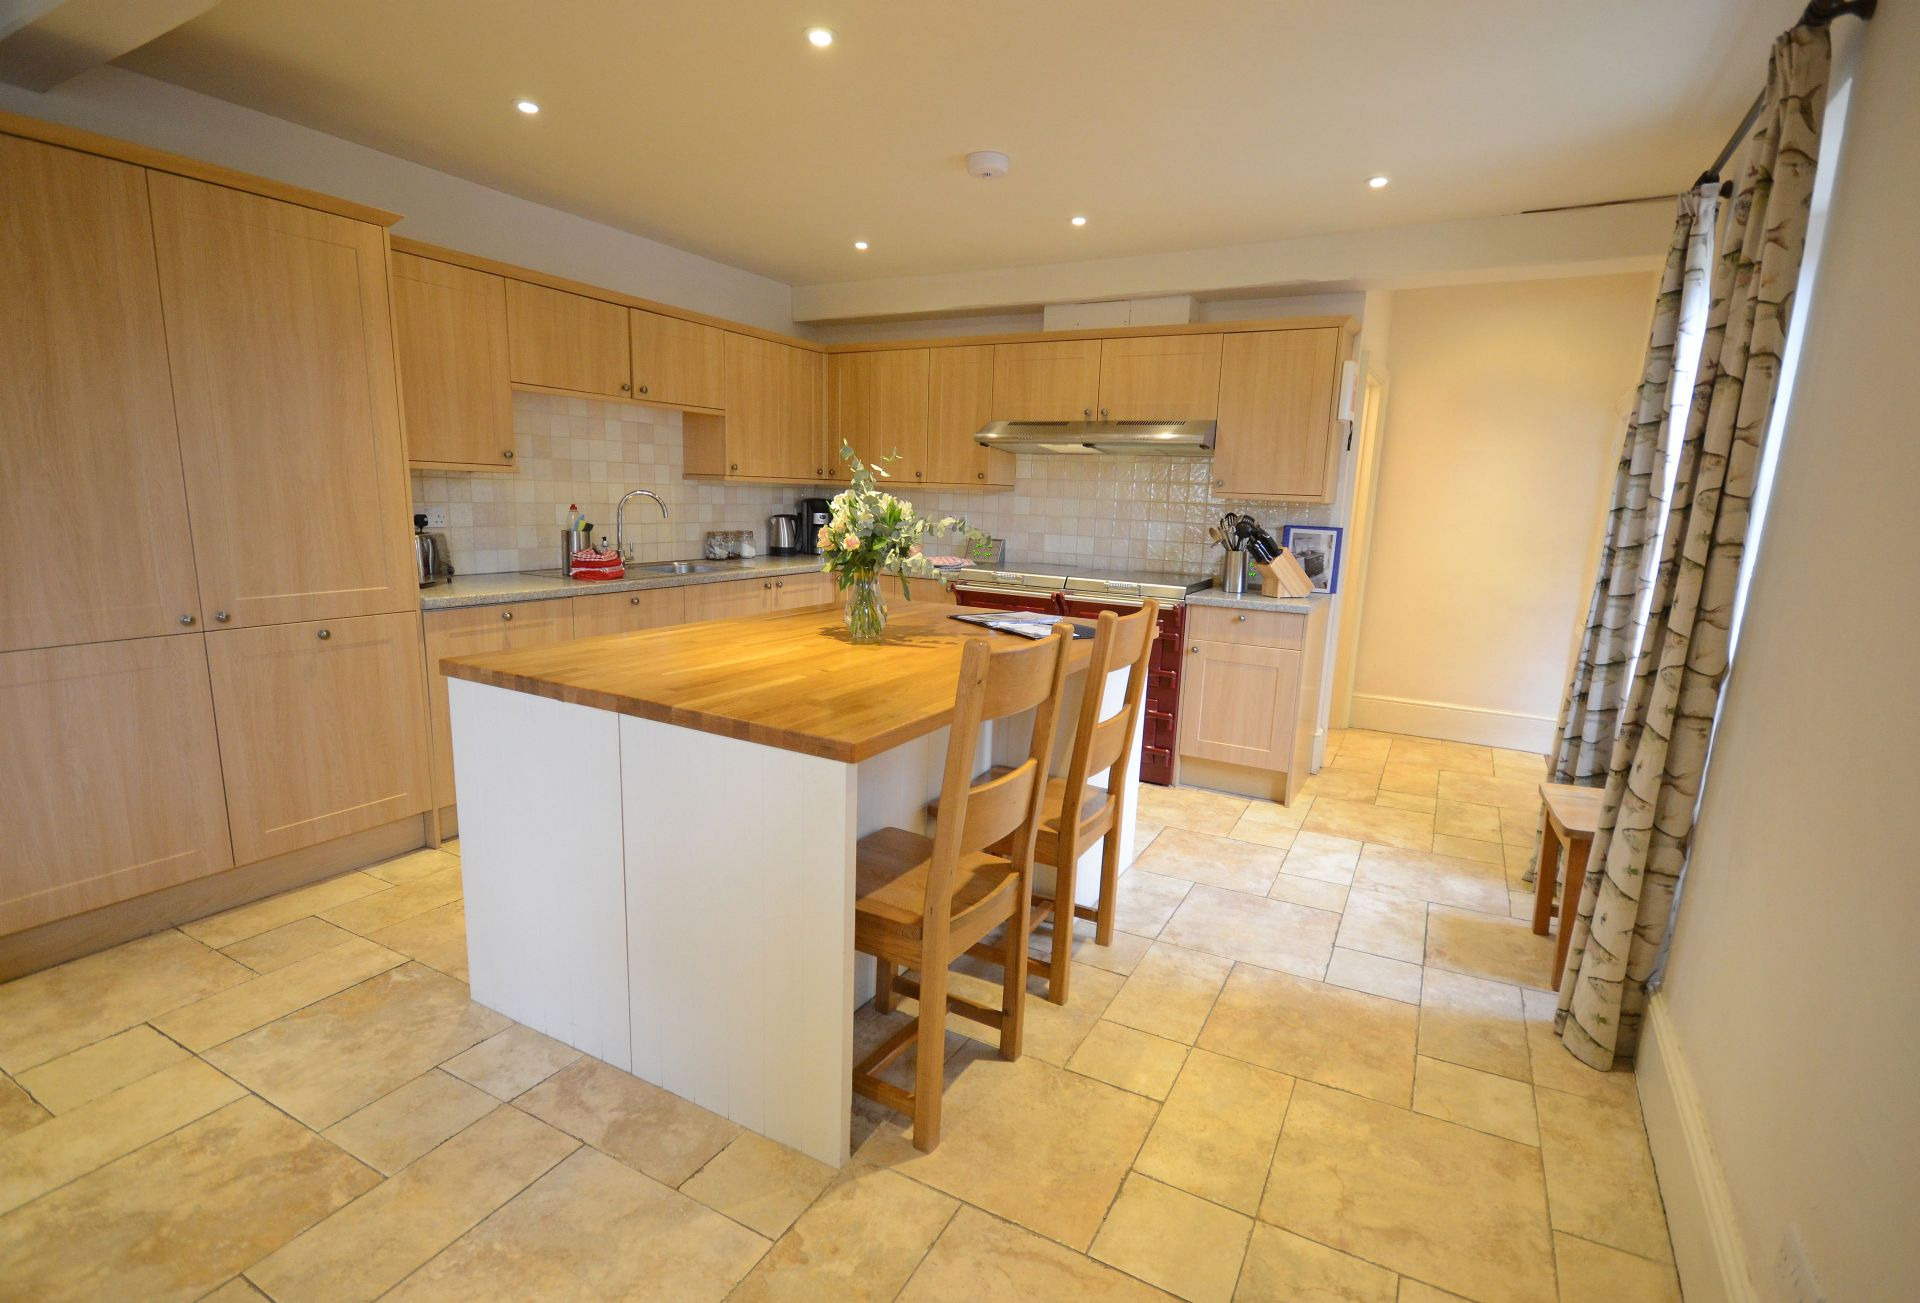 Another aspect of the Kitchen